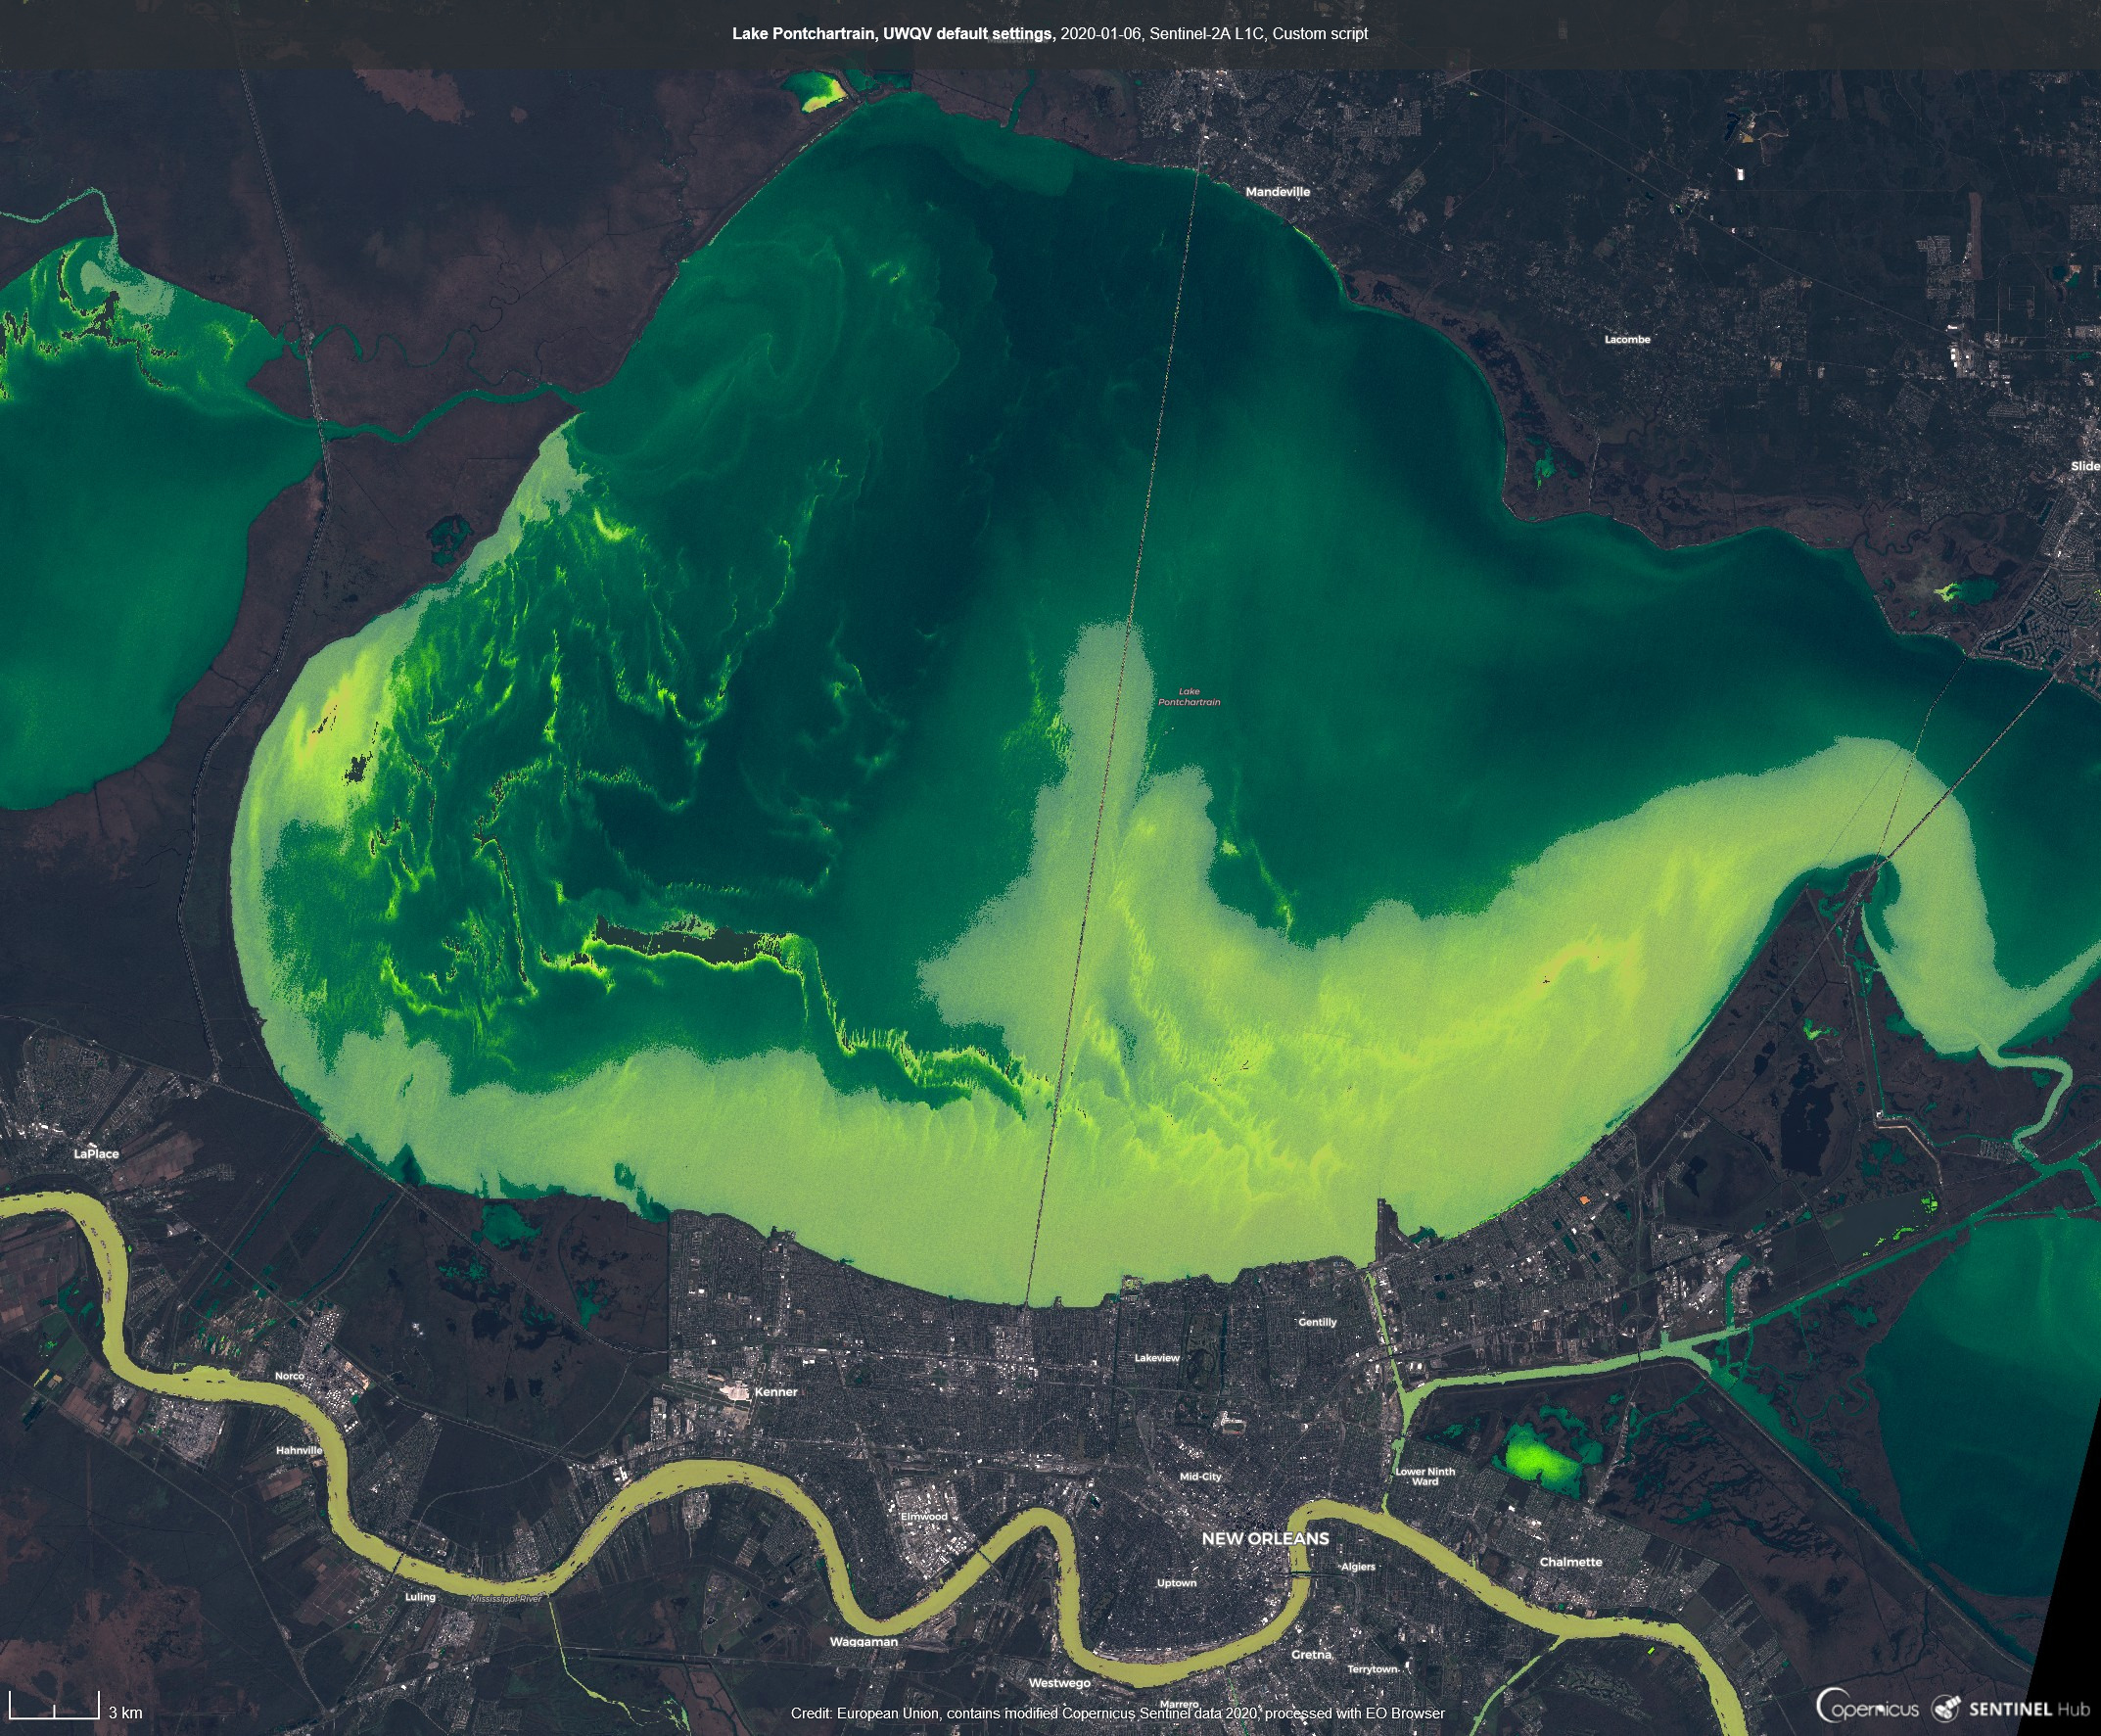 '2020-01-06-Sentinel_2A_Lake_Pontchartrain'